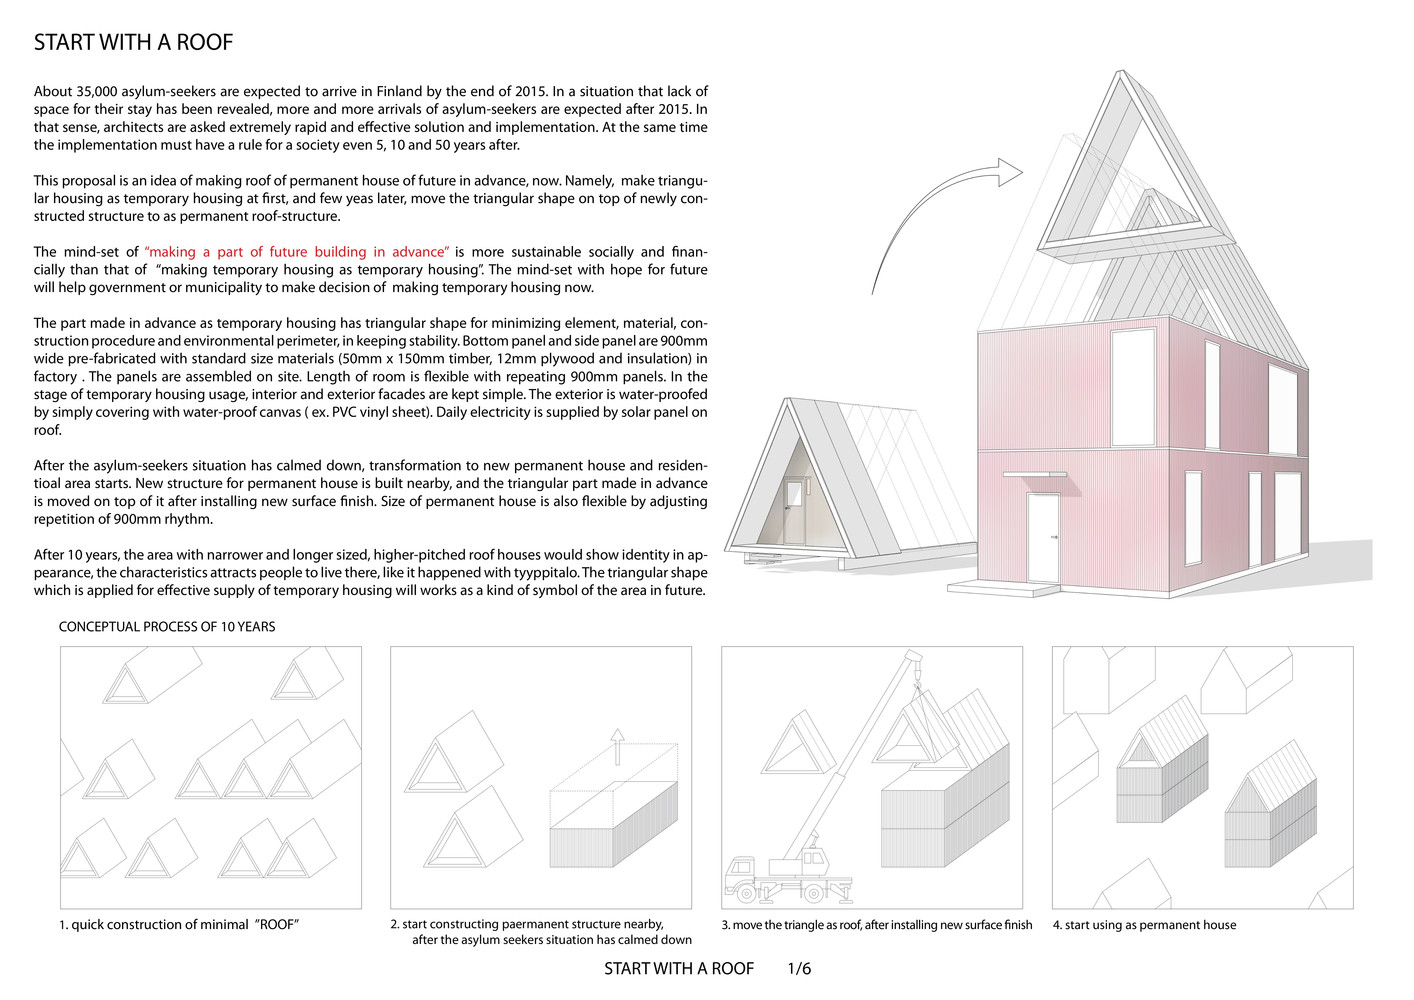 Gallery Of 7 Architectural Solutions For Asylum Seekers Shown By The